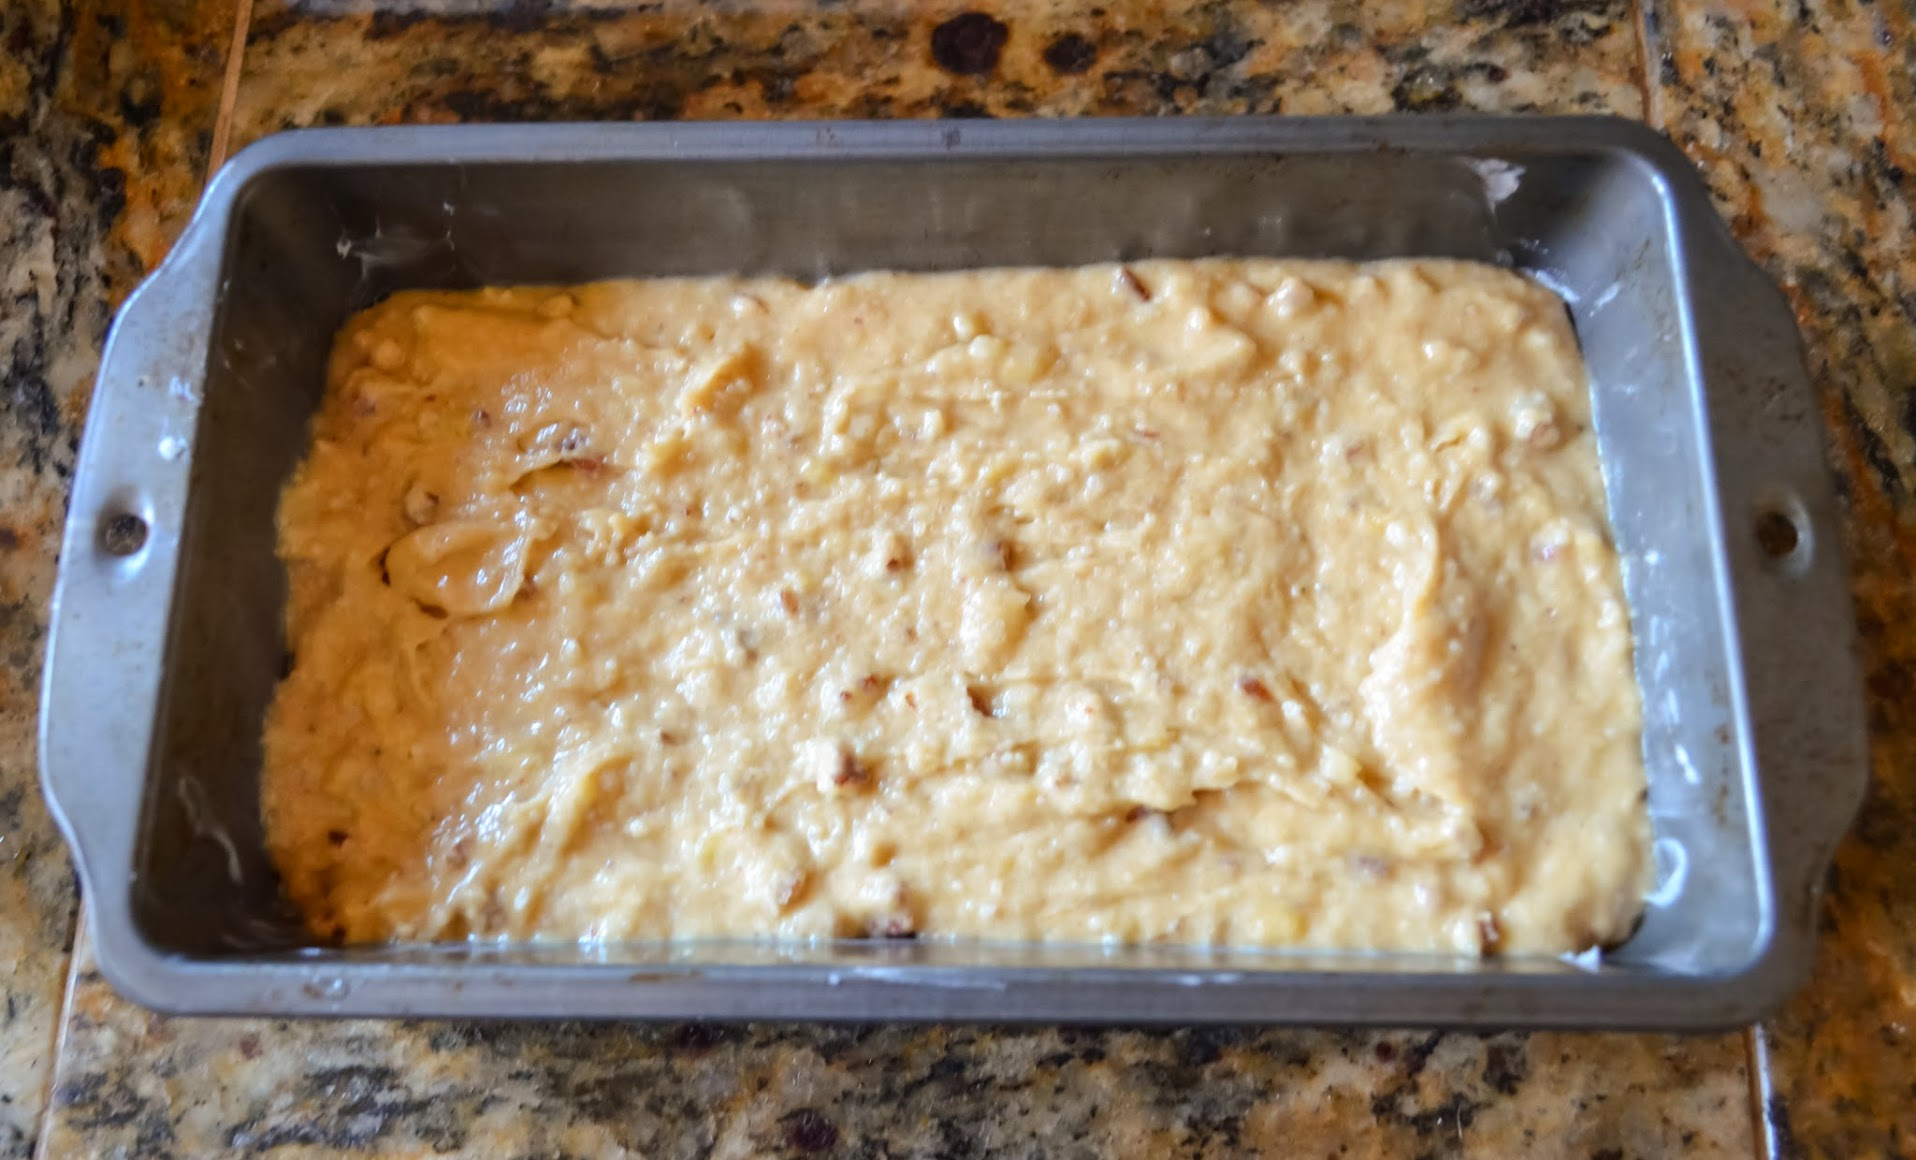 Grannies-Banana-Luncheon-Loaf-Grease-Loaf-Pan-Batter.jpg